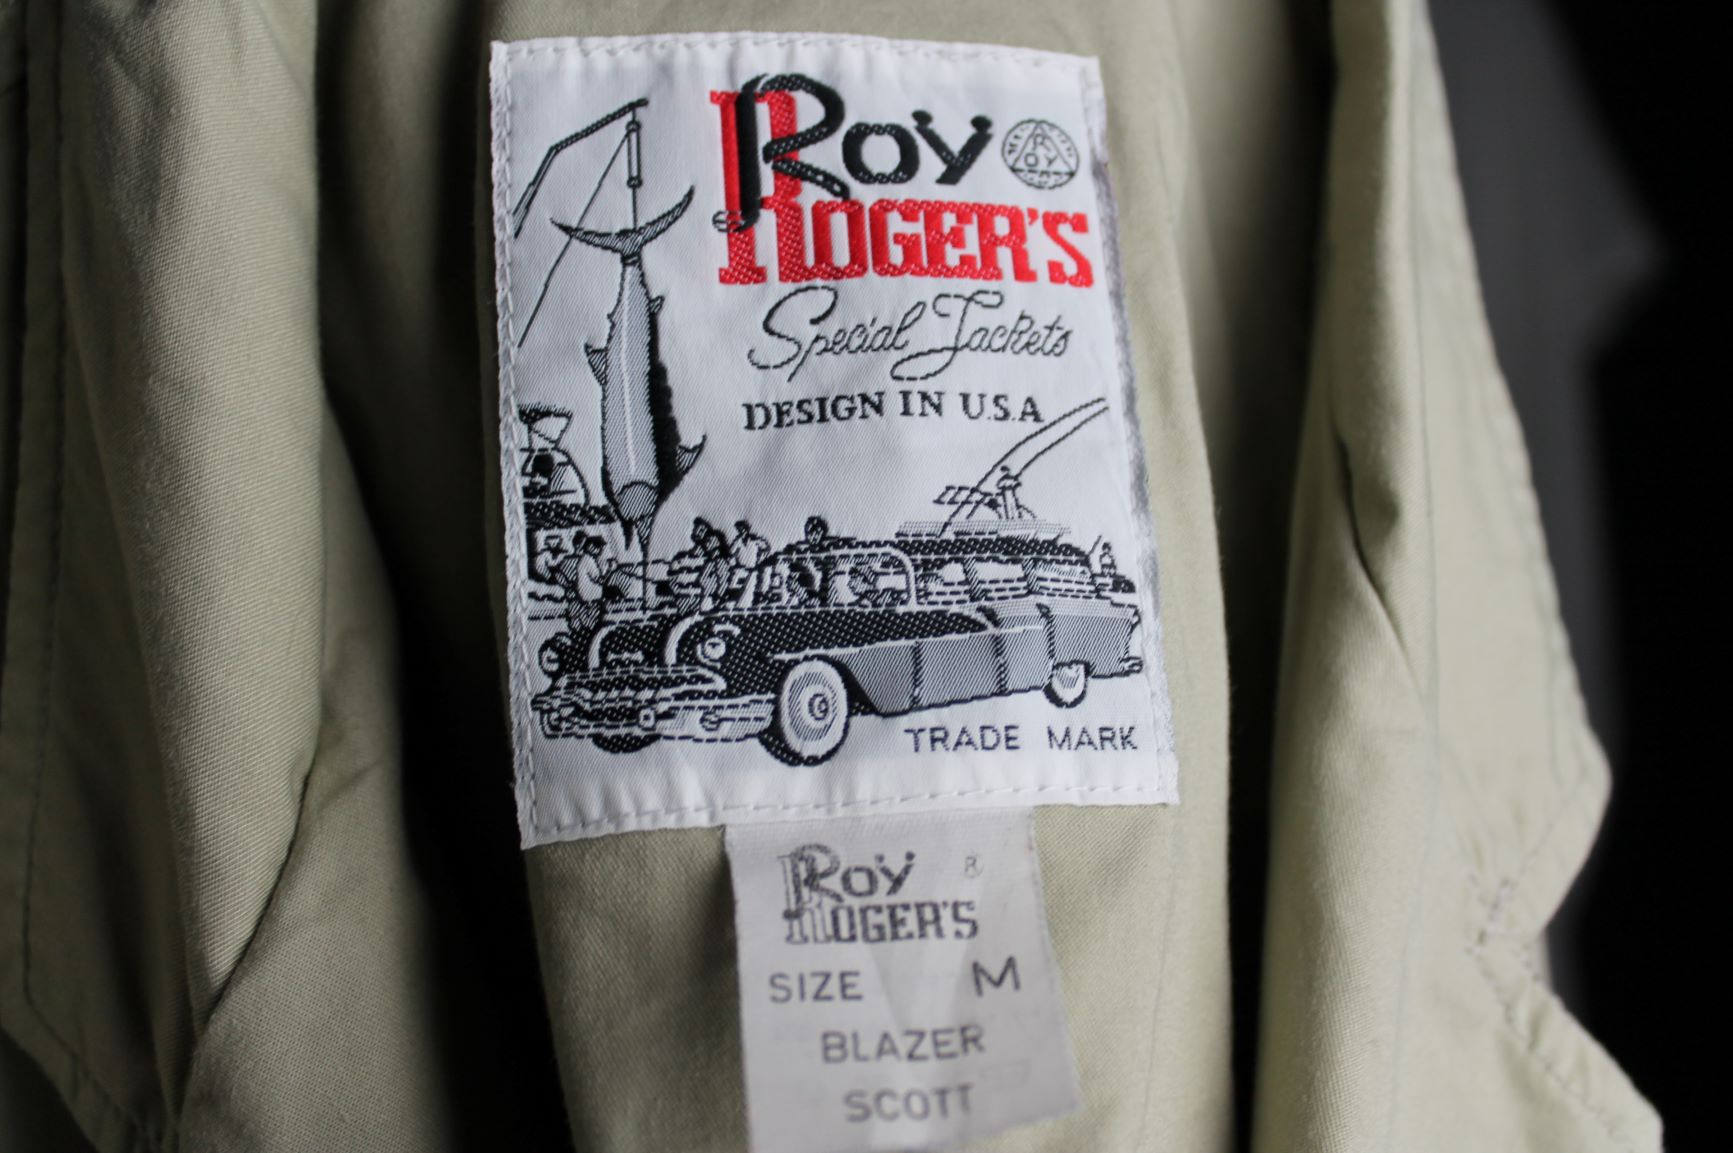 Roy Rogers blazer size Man M - L Woman oversized